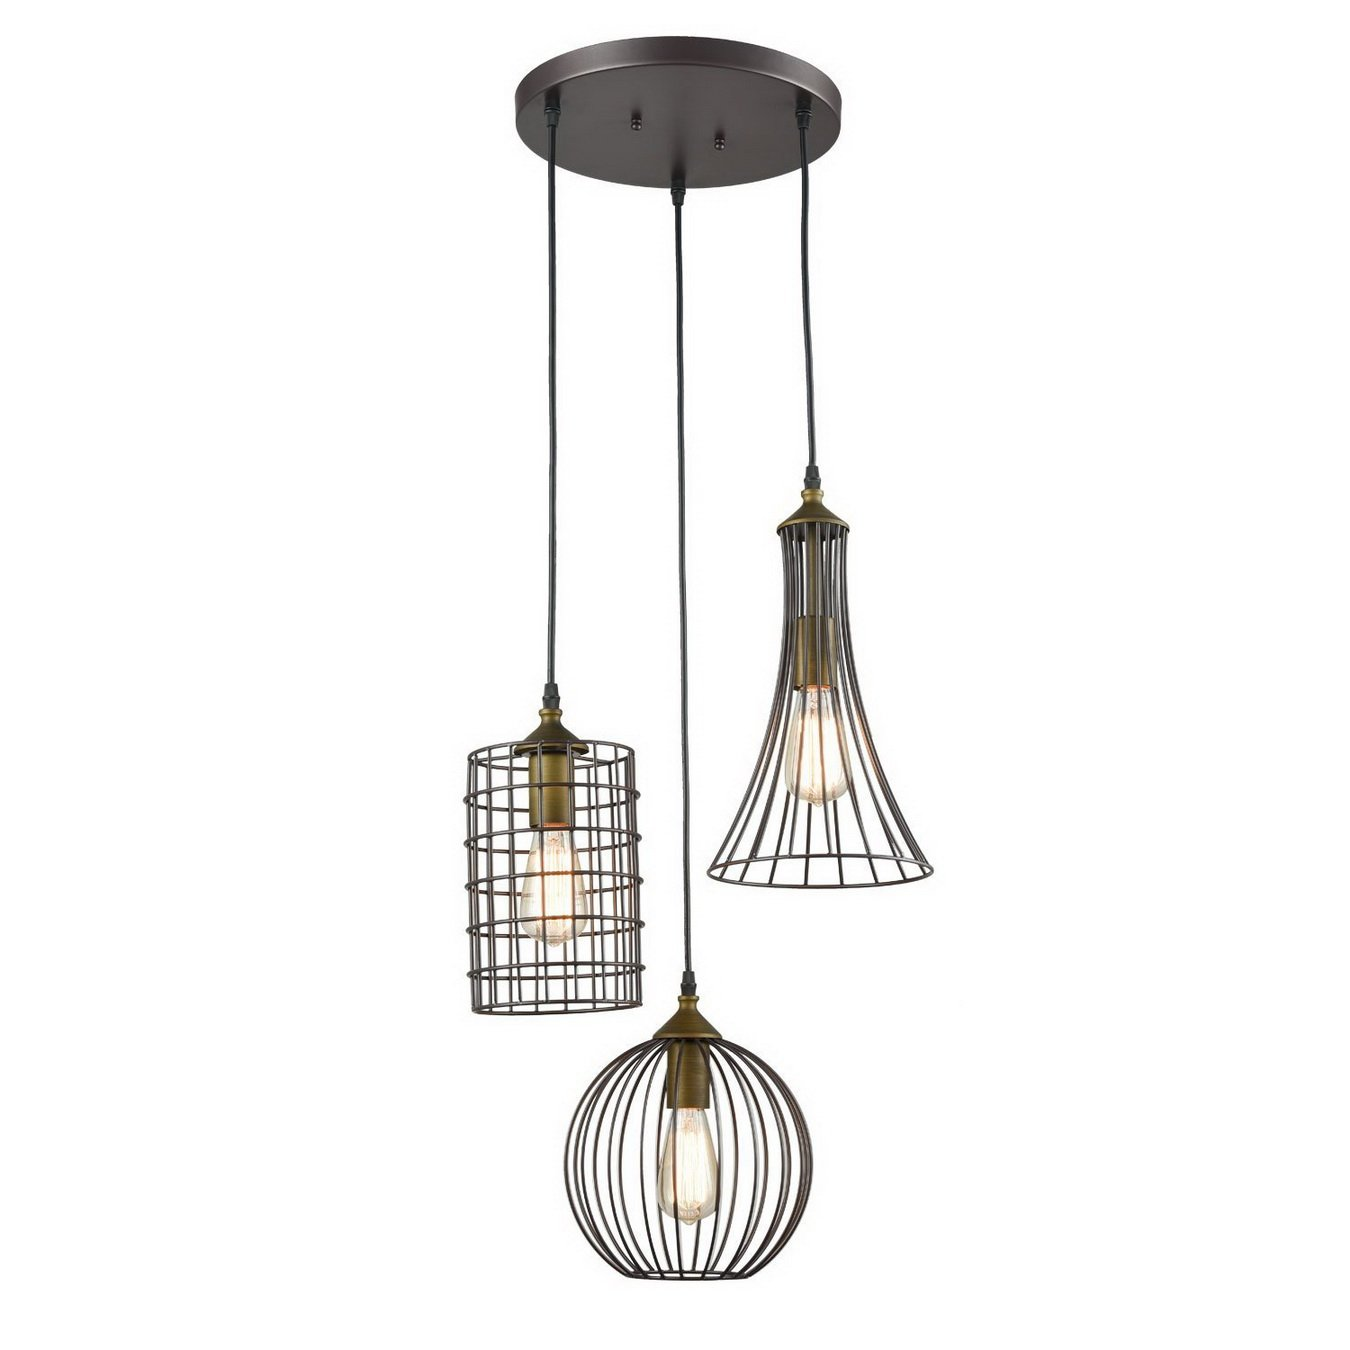 YOBO Lighting Antique 3-lights Oil Rubbed Bronze Chandelier with Wire Cage by YOBO Lighting